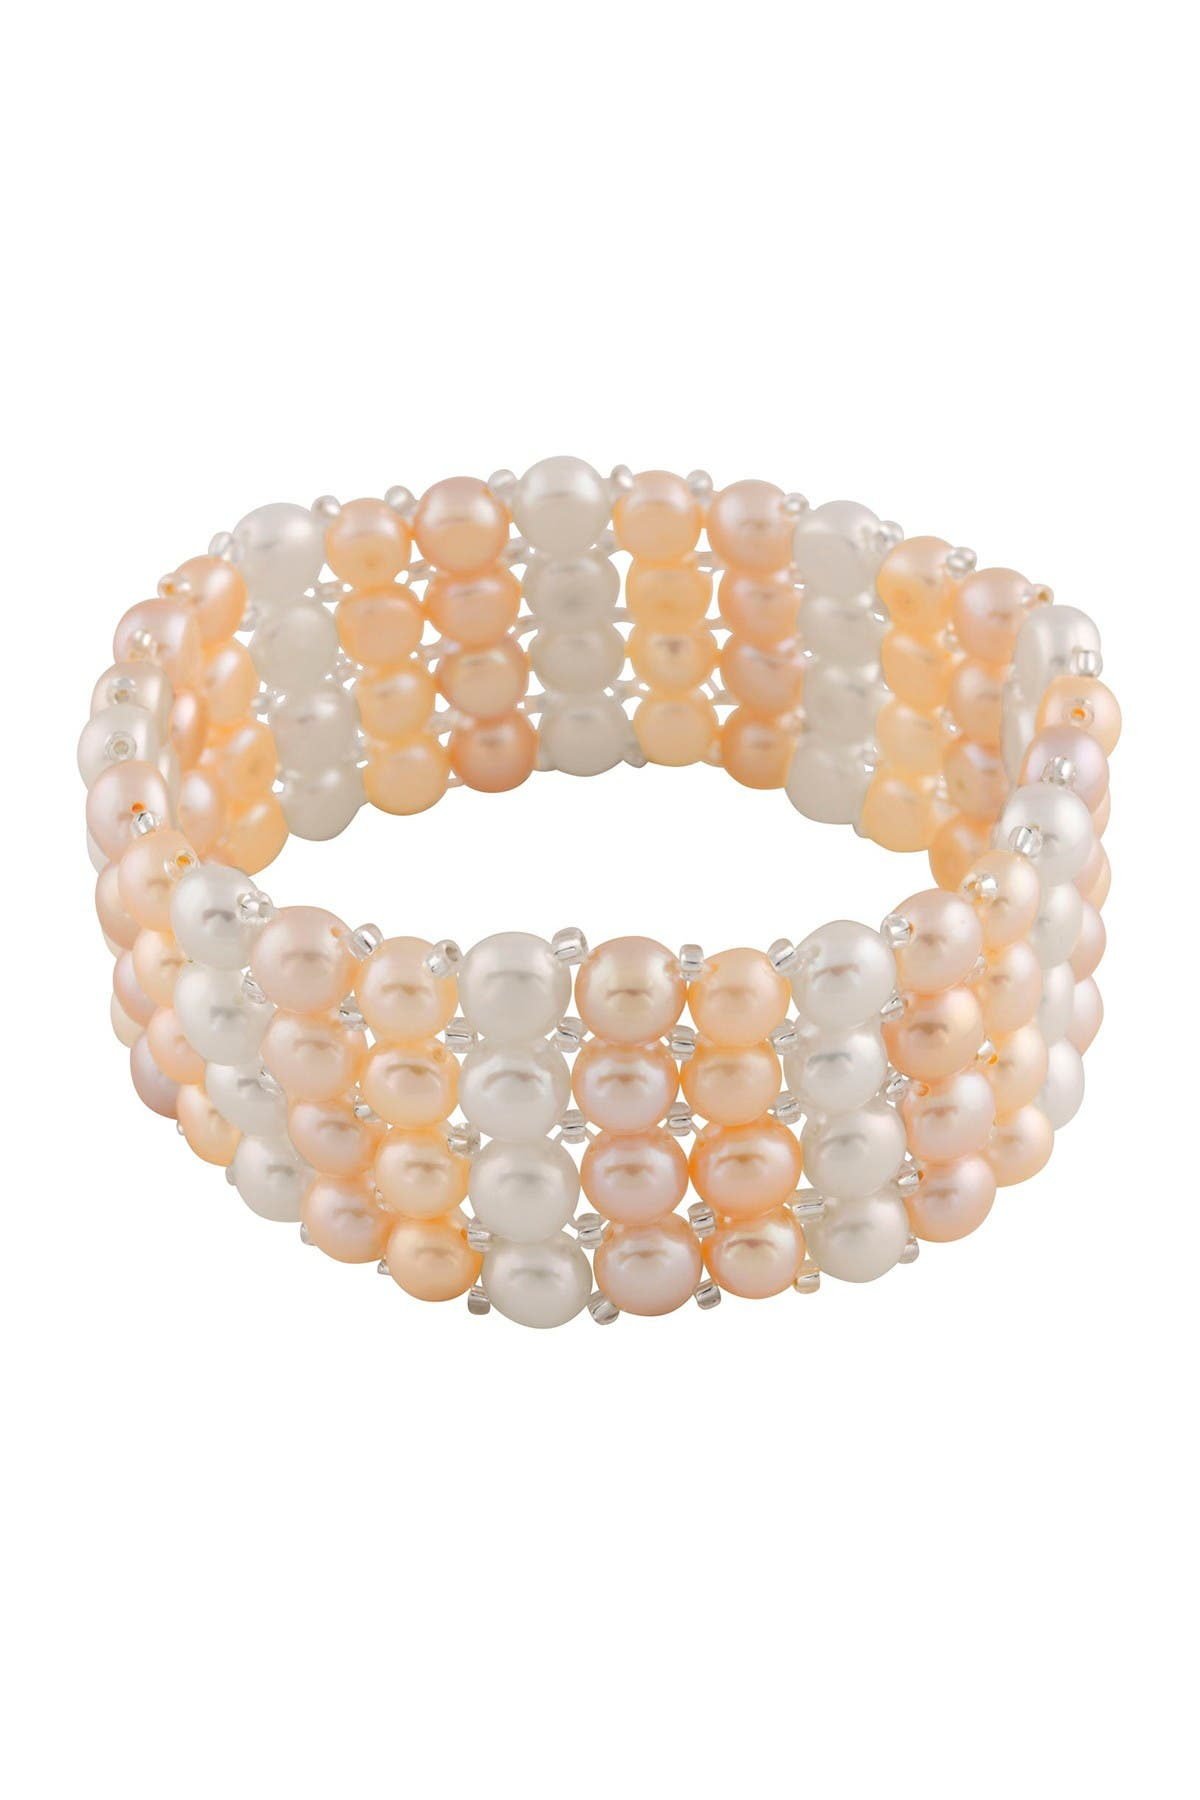 Image of Splendid Pearls Stacked Multicolored 7-8mm Pearl Stretch Bracelet